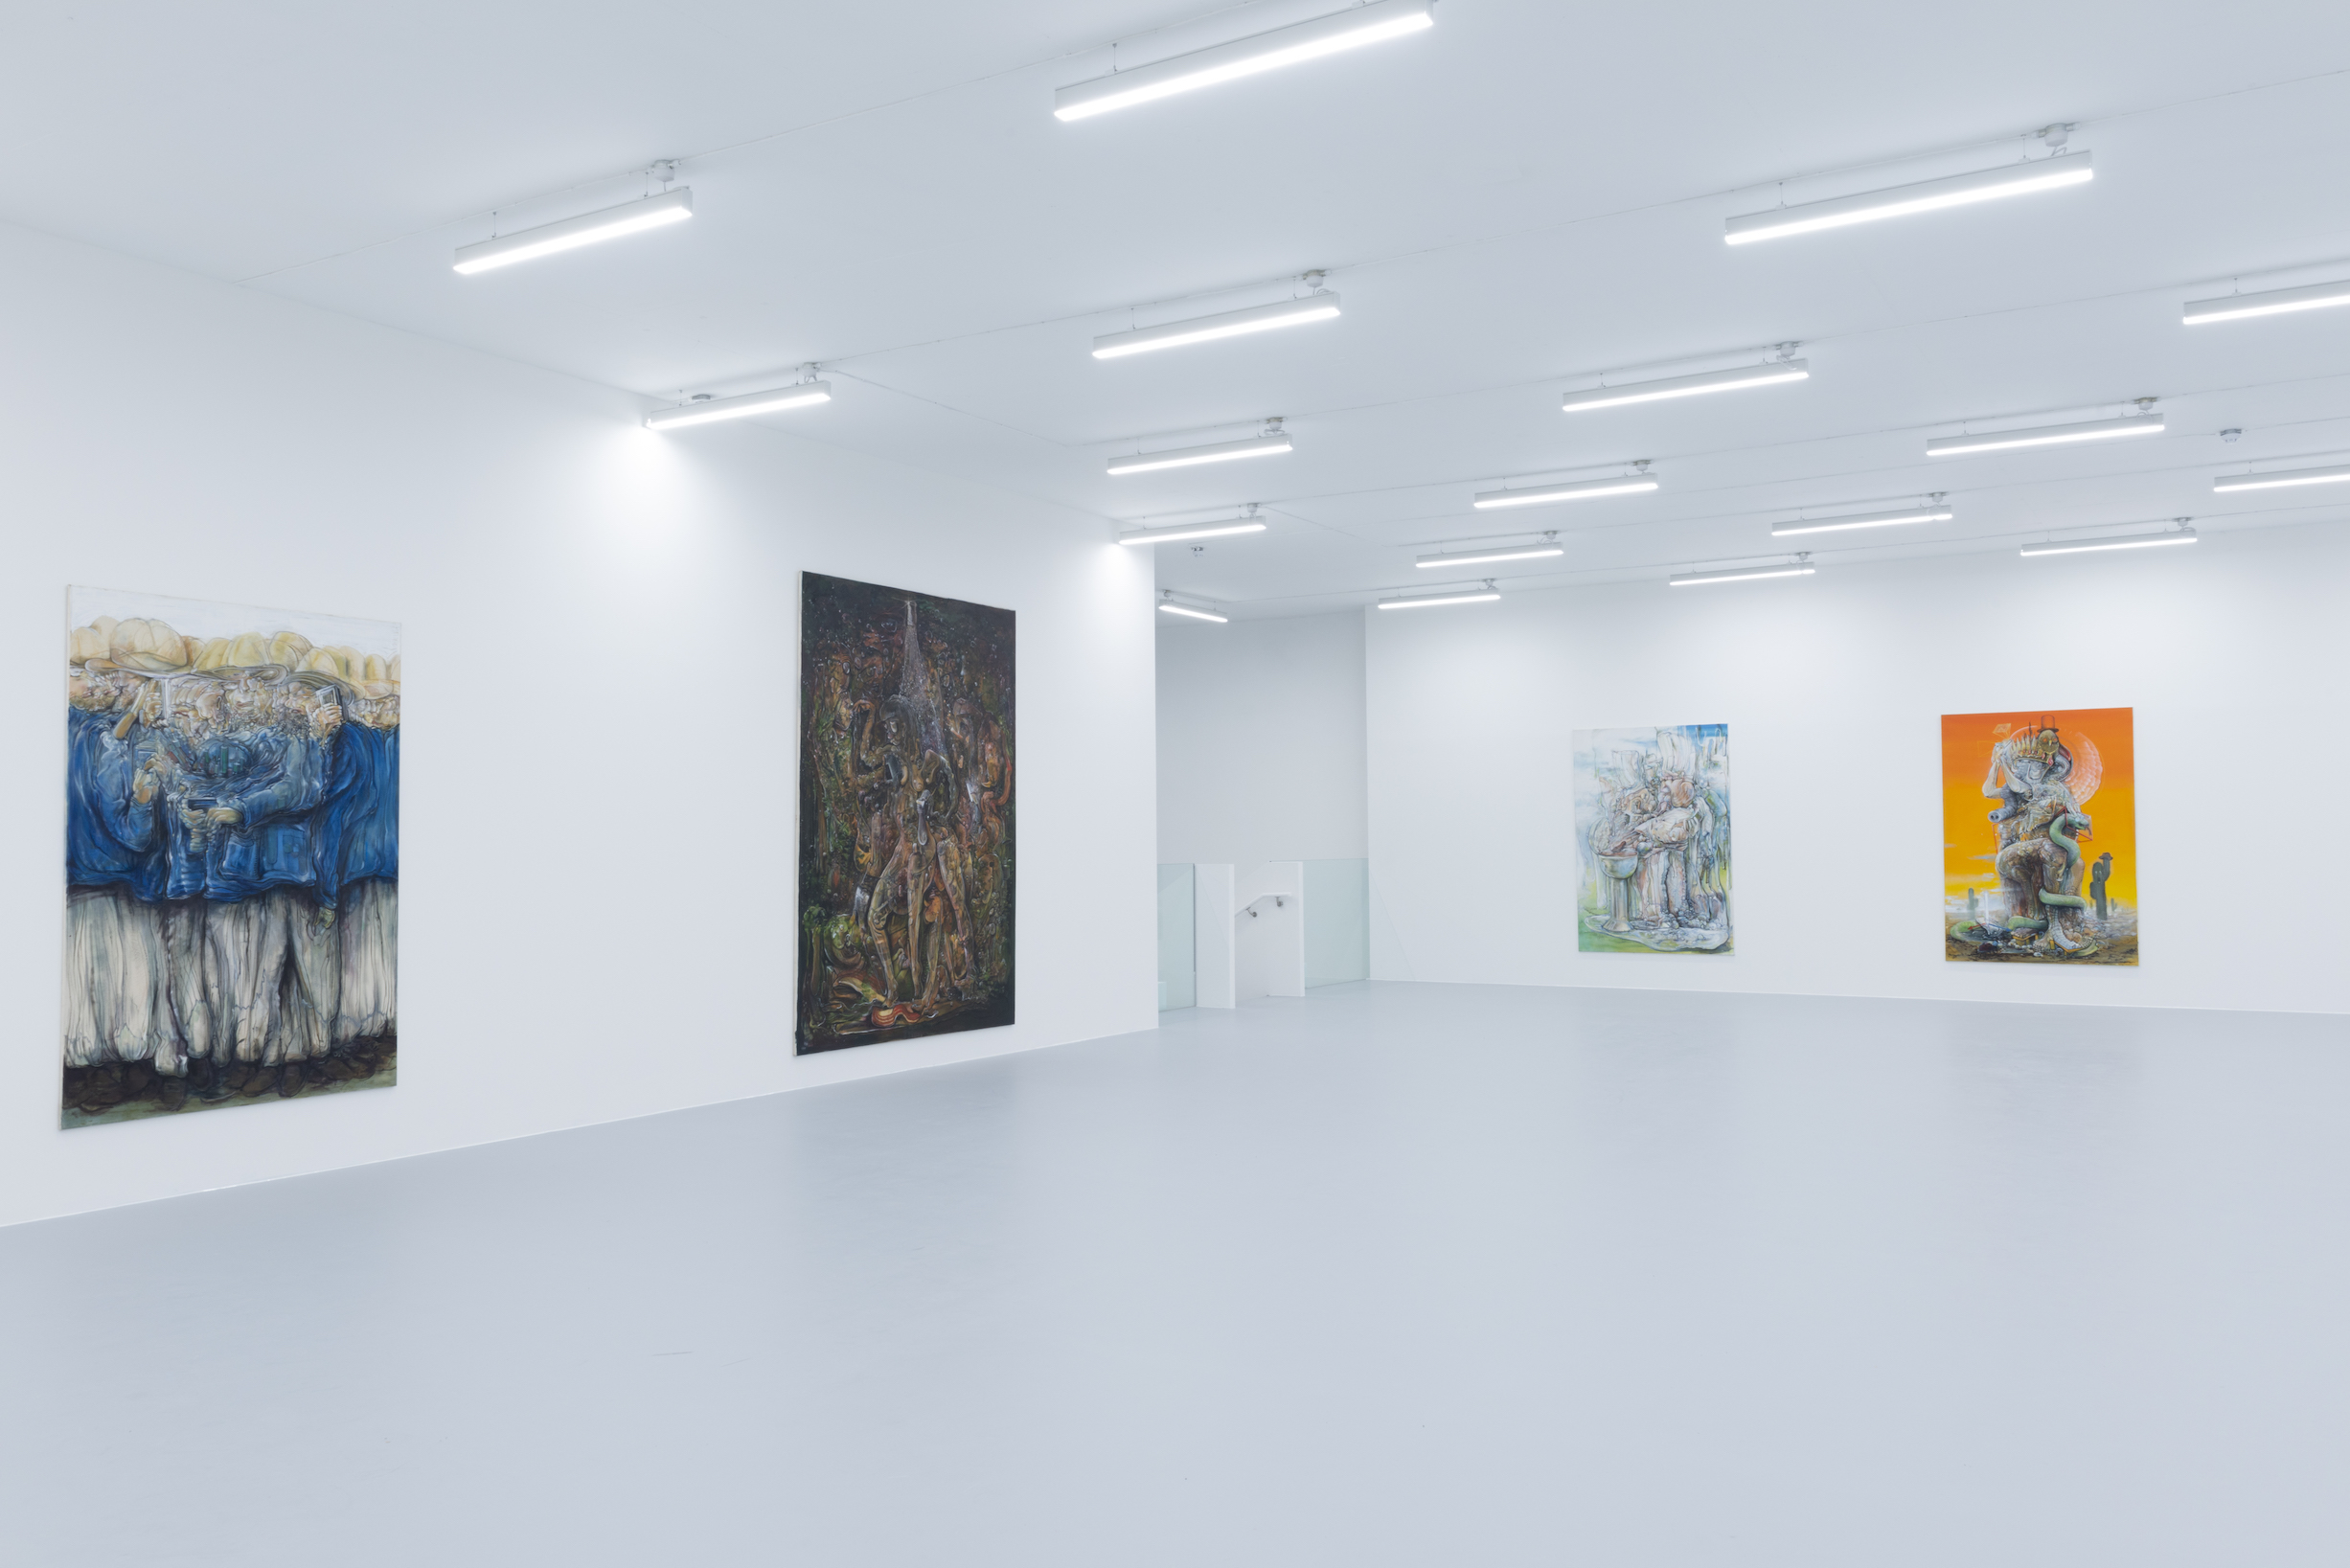 Installation view 6, Pascal Sender at Saatchi Yates, 2020, Courtesy of the artist and Saatchi Yates